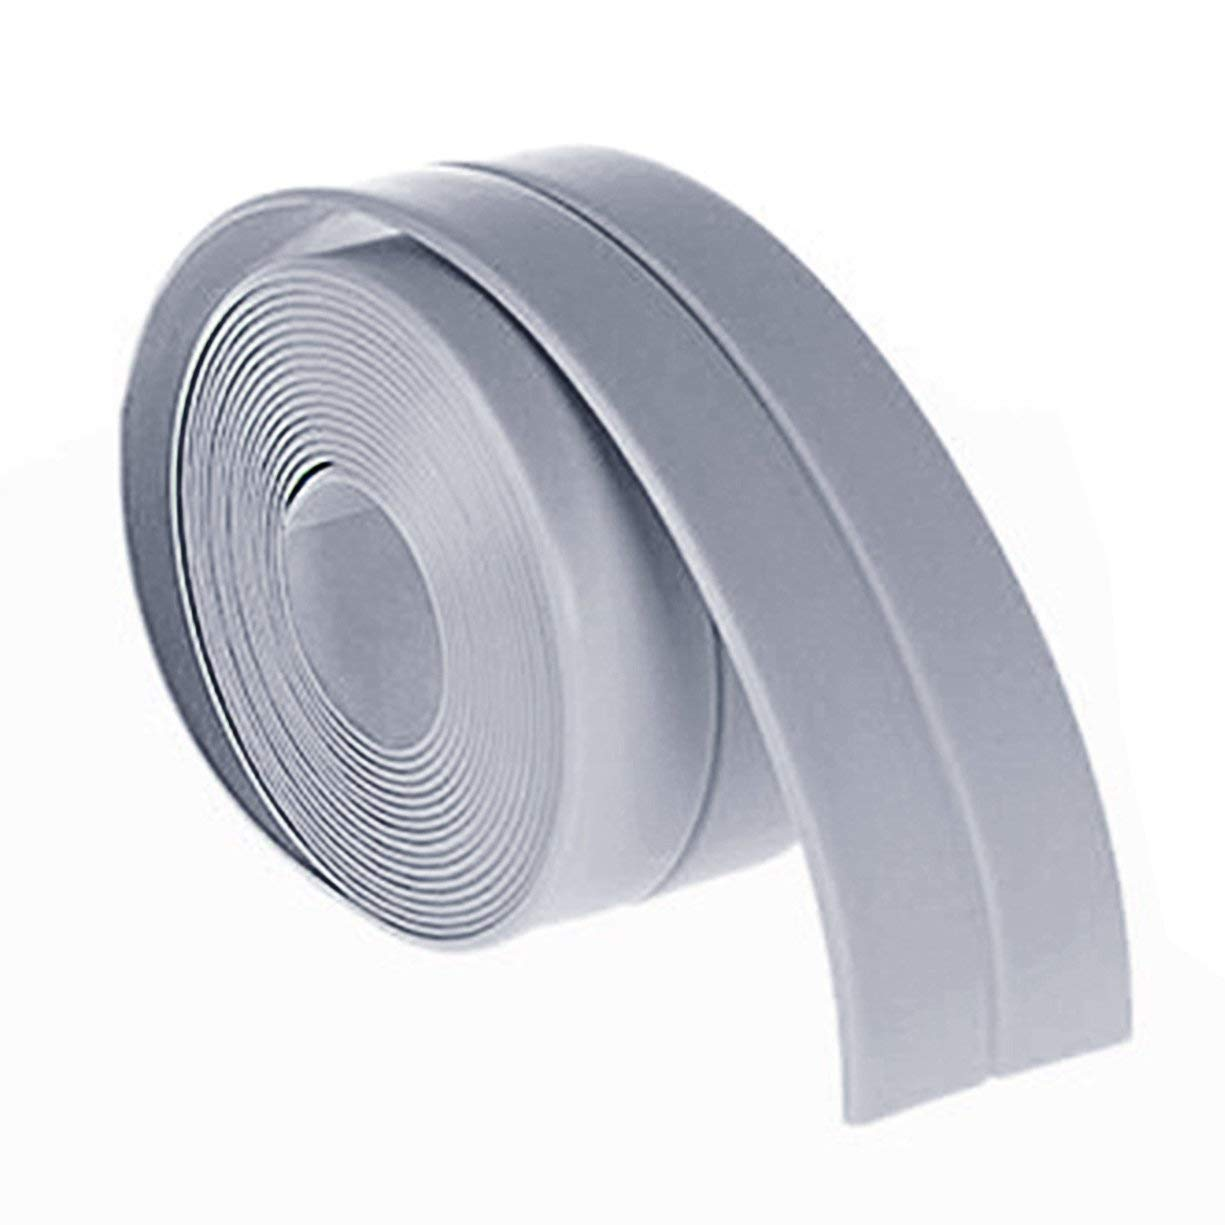 A Roll Of Kitchen Bathroom Bathtub Wall Sealing Tape, 38mm * 3.2M Home Kitchen Bathroom Bathtub Waterproof Wall Sealing Tape Strip Mildew Resistant Self Adhesive Tape For Sink Basin Detectoy